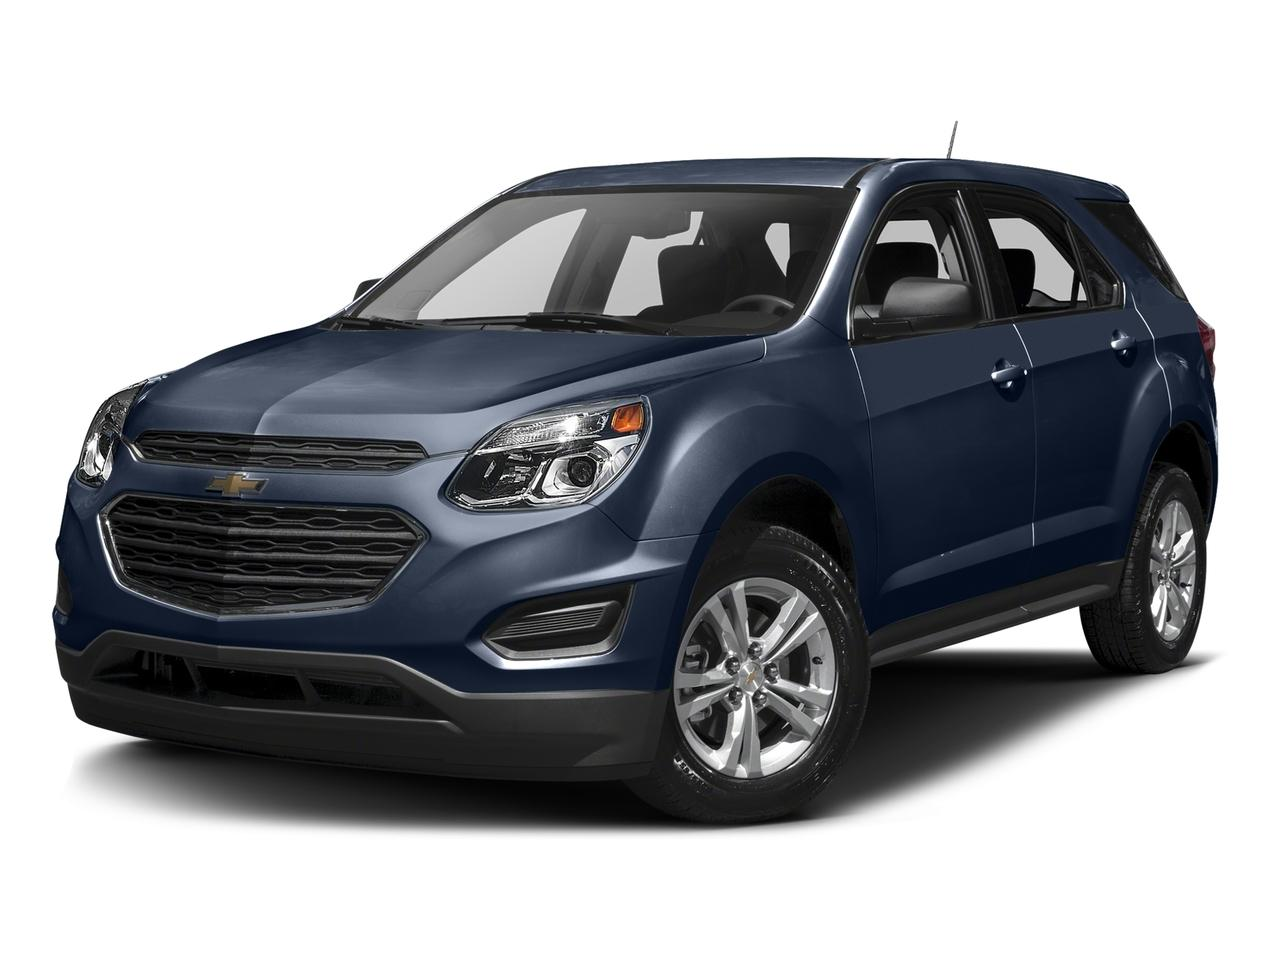 2016 Chevrolet Equinox Vehicle Photo in Brockton, MA 02301